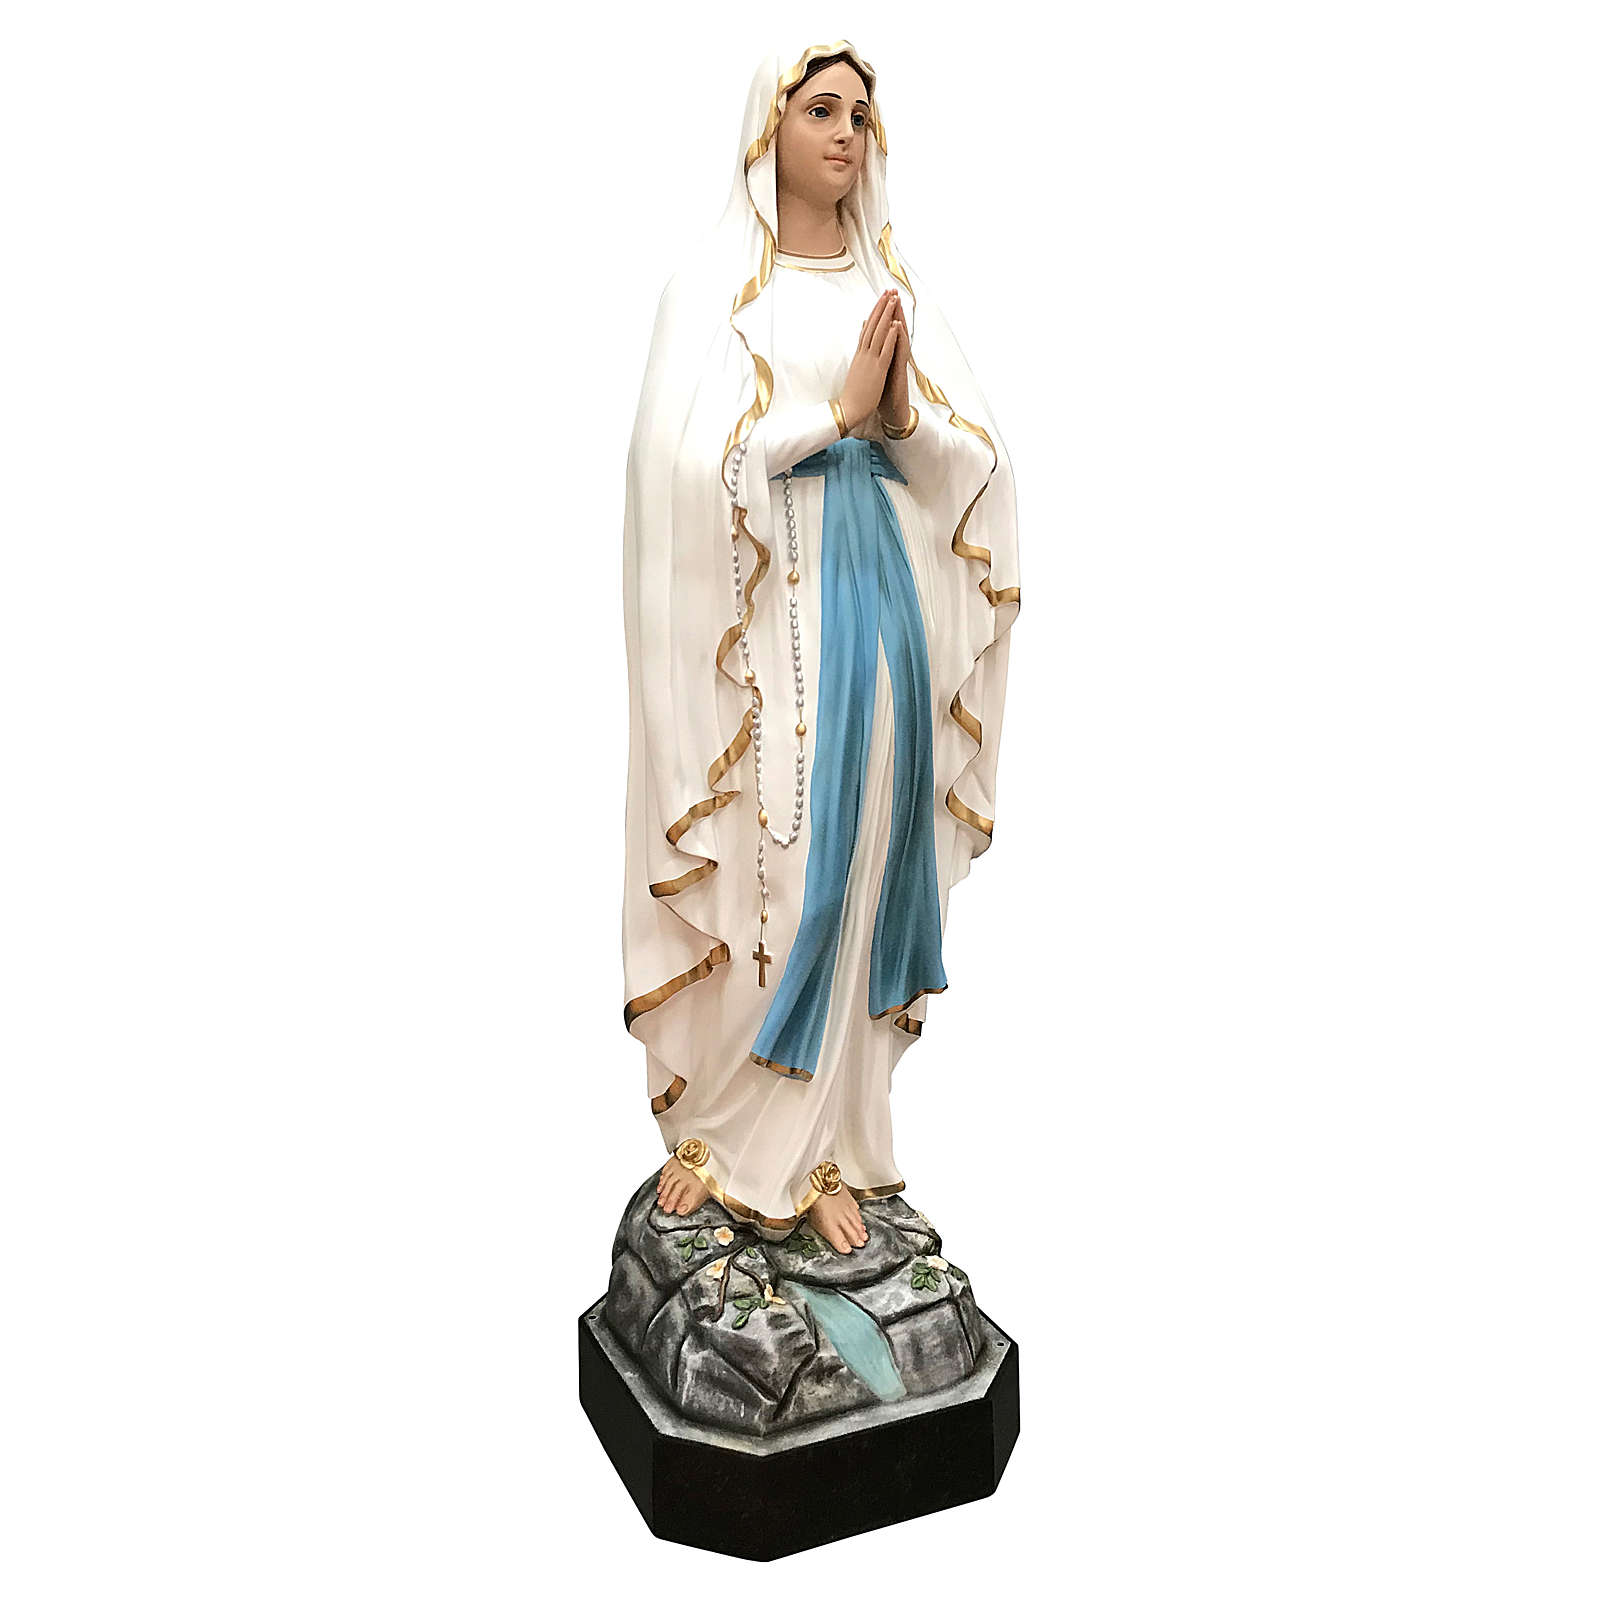 Statue of Our Lady of Lourdes in painted fibreglass with glass eyes 130 cm 4